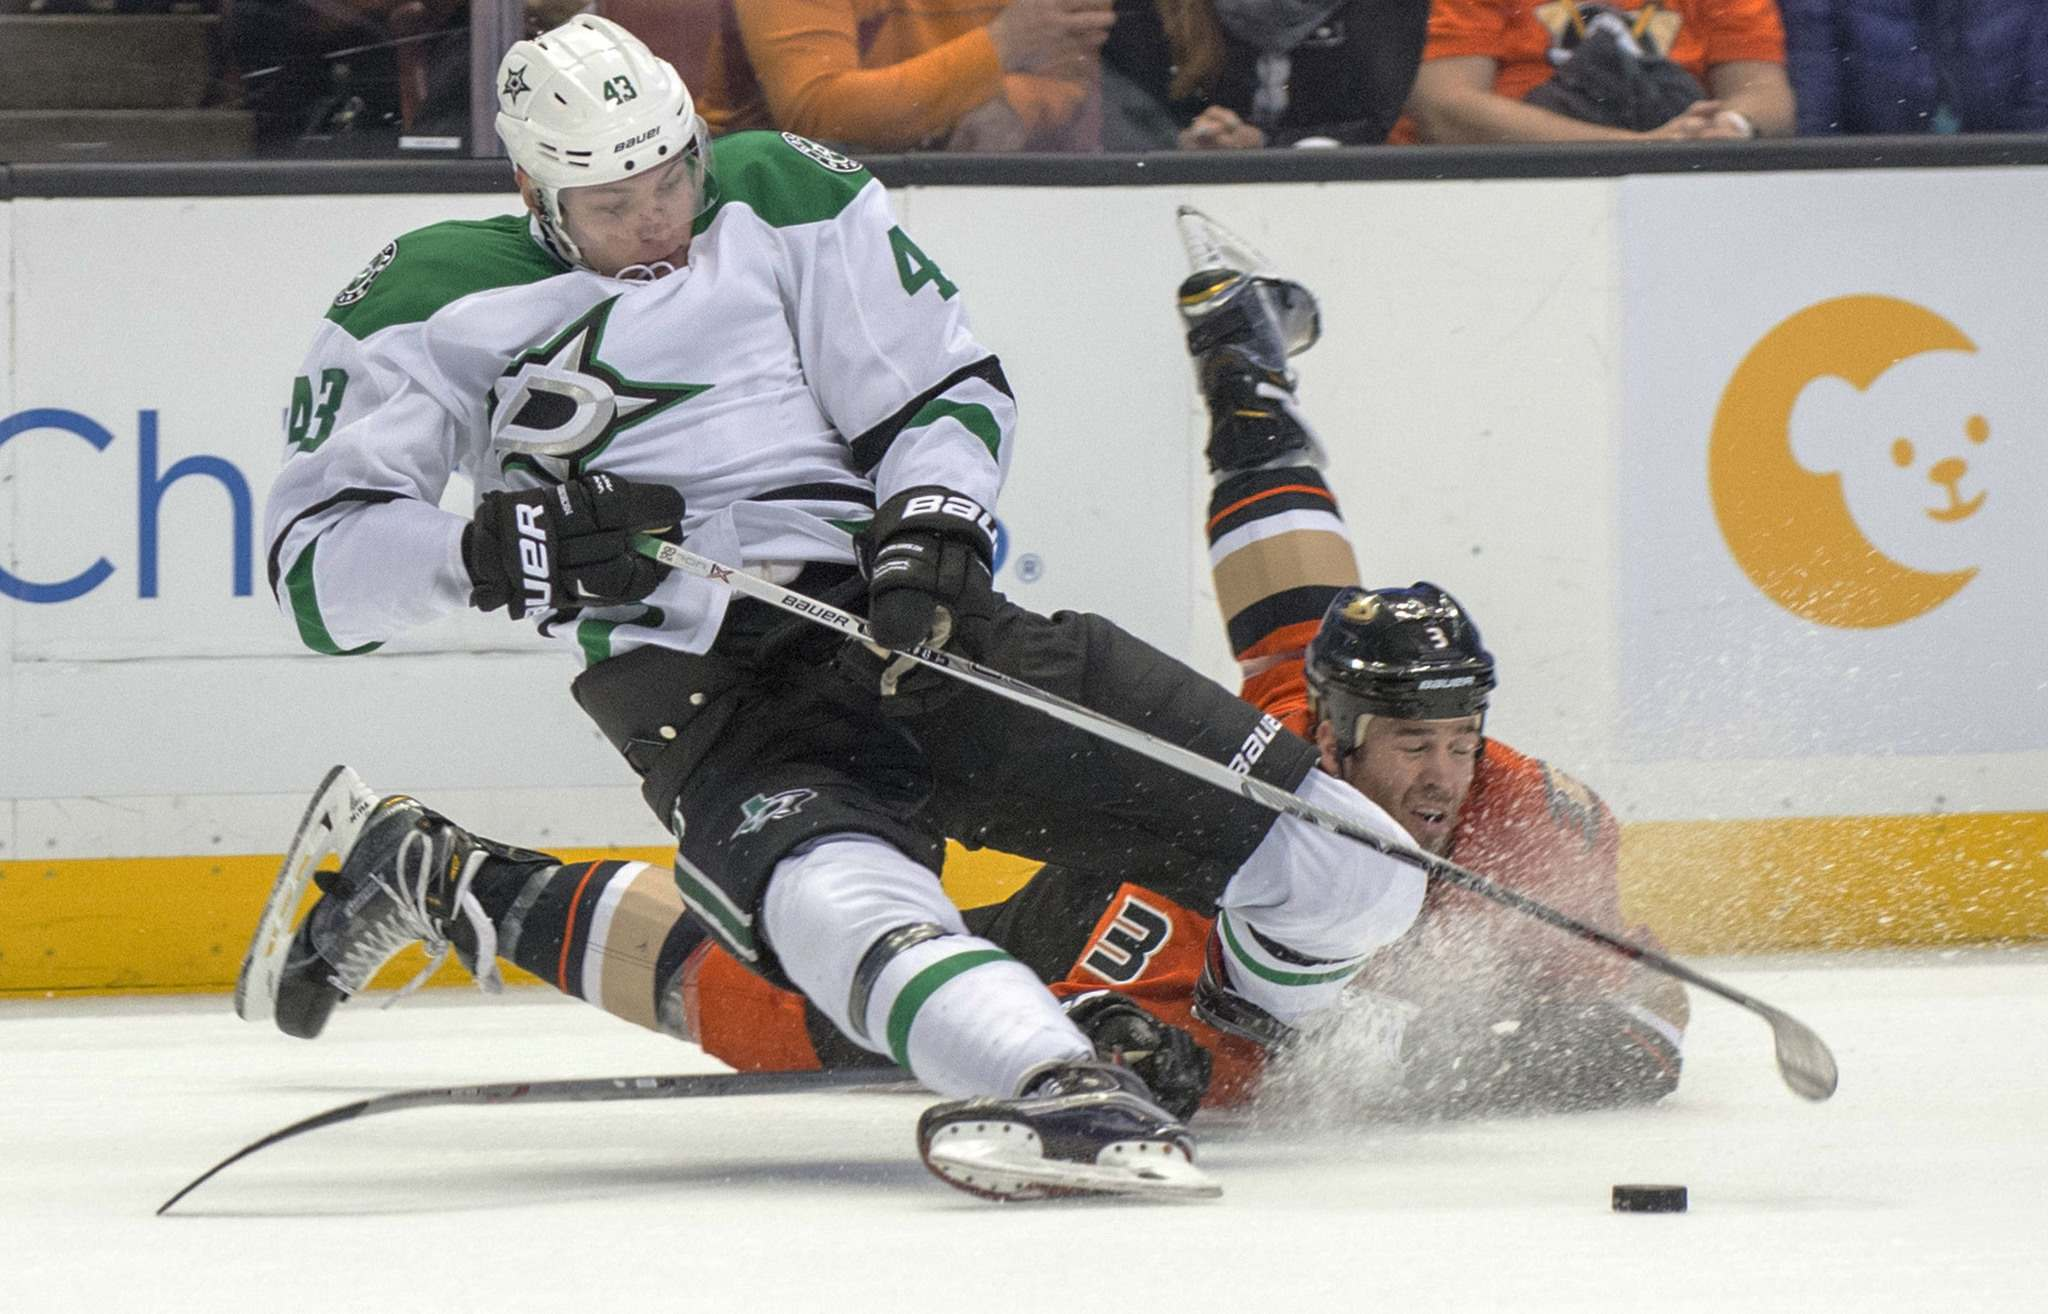 Valeri Nichushkin (left) is back with the Dallas Stars after two seasons in the KHL and could provide another explosive weapon up front for the team. (Michael Goulding / The Orange County Register Files)</p>